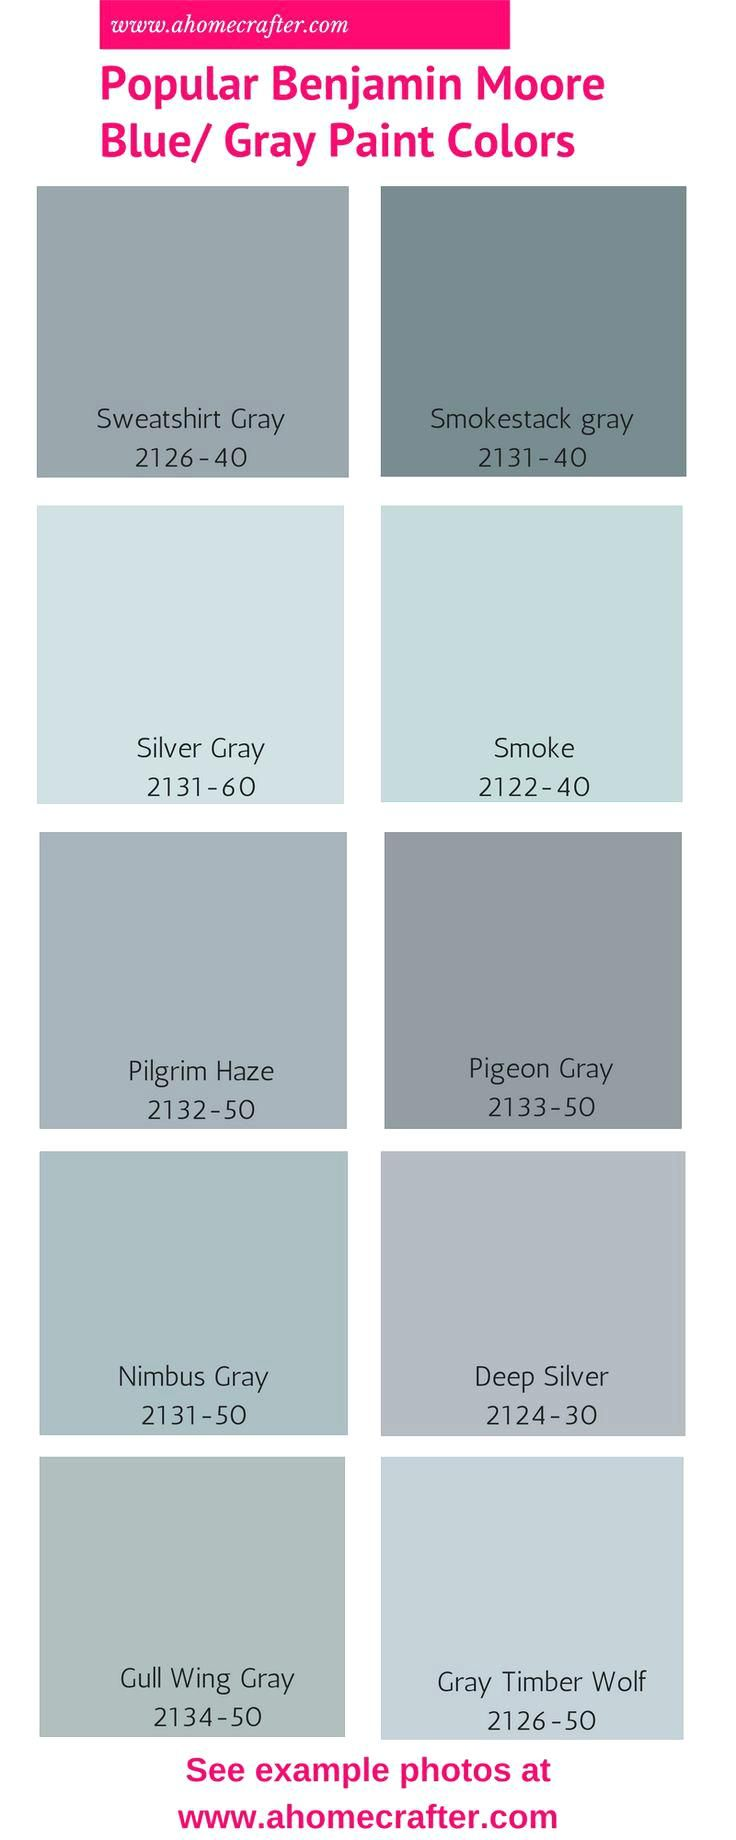 Farbtöne Wandfarbe Find This Pin And More On Paint Colorsbest Blue Gray Color Sherwin